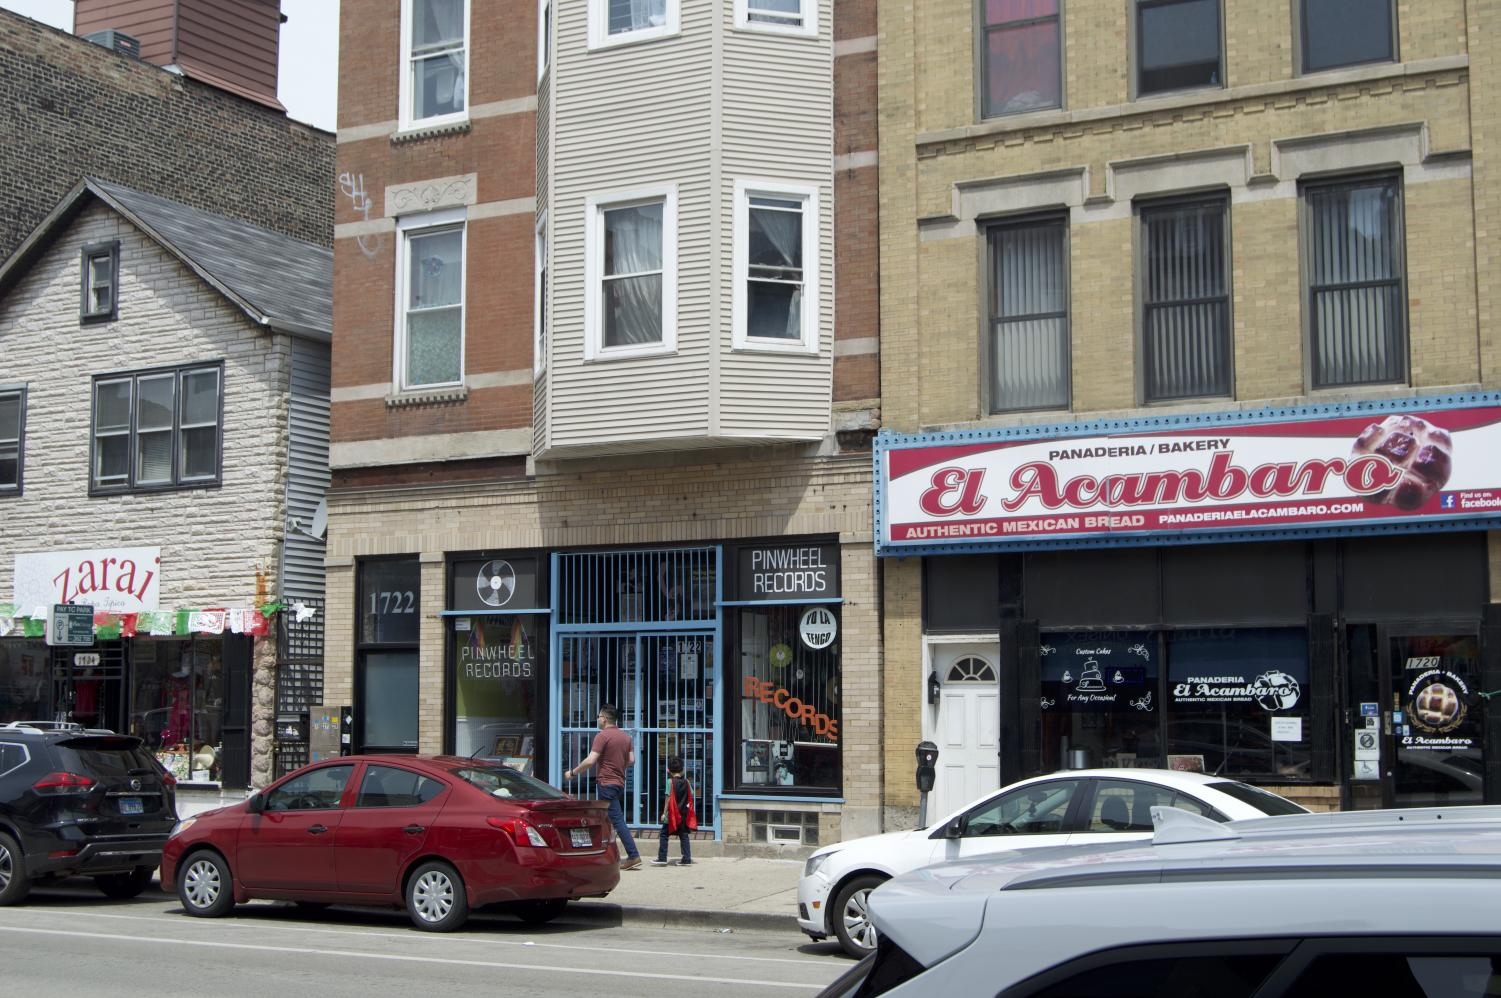 Pilsen has seen the opening of trendy spots that invite people with a higher income, including Pinwheel Records which opened in 2015.